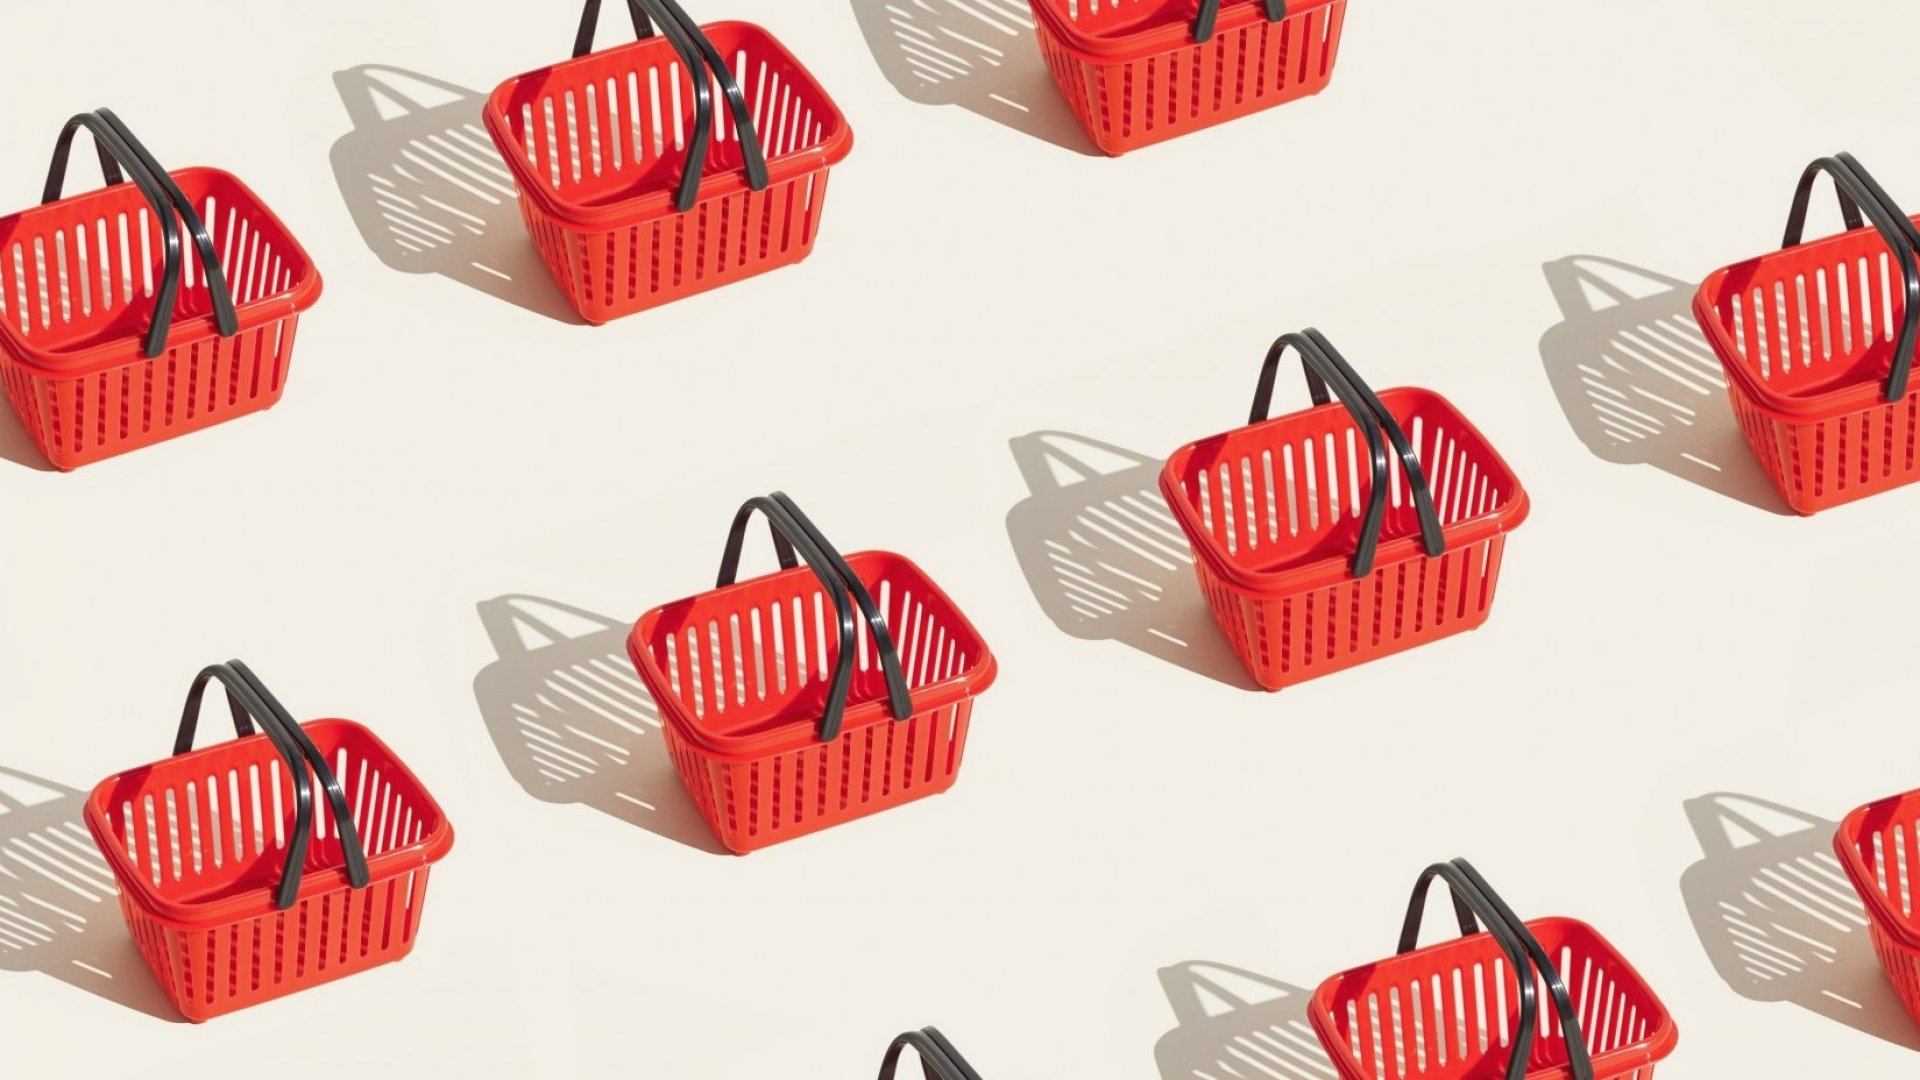 5 Retail Trends to Watch in 2020